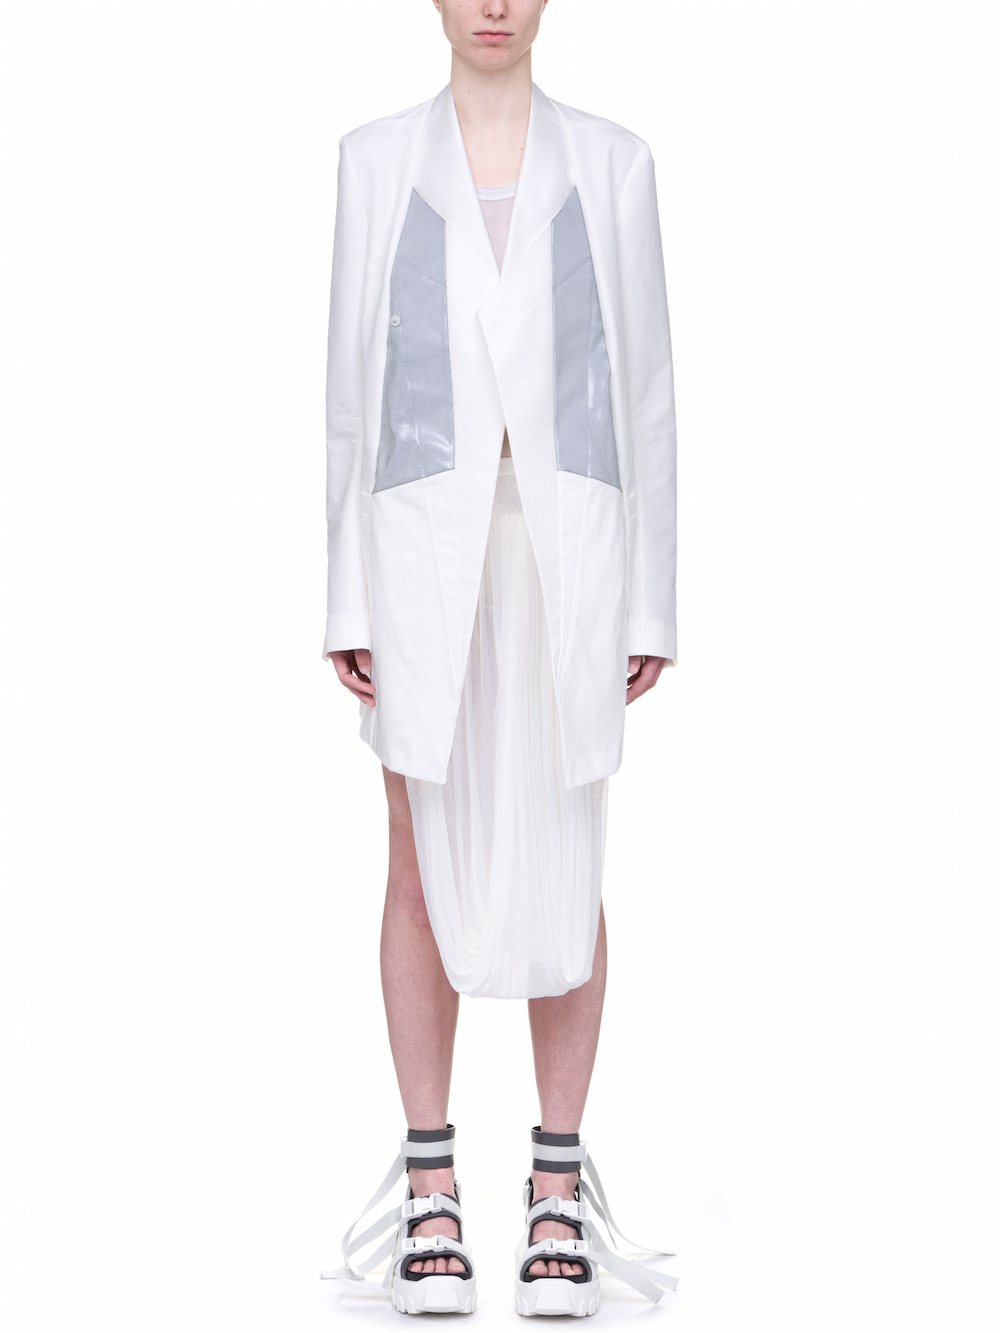 RICK OWENS OFF-THE-RUNWAY BROTHER BLAZER IN CHALK WHITE